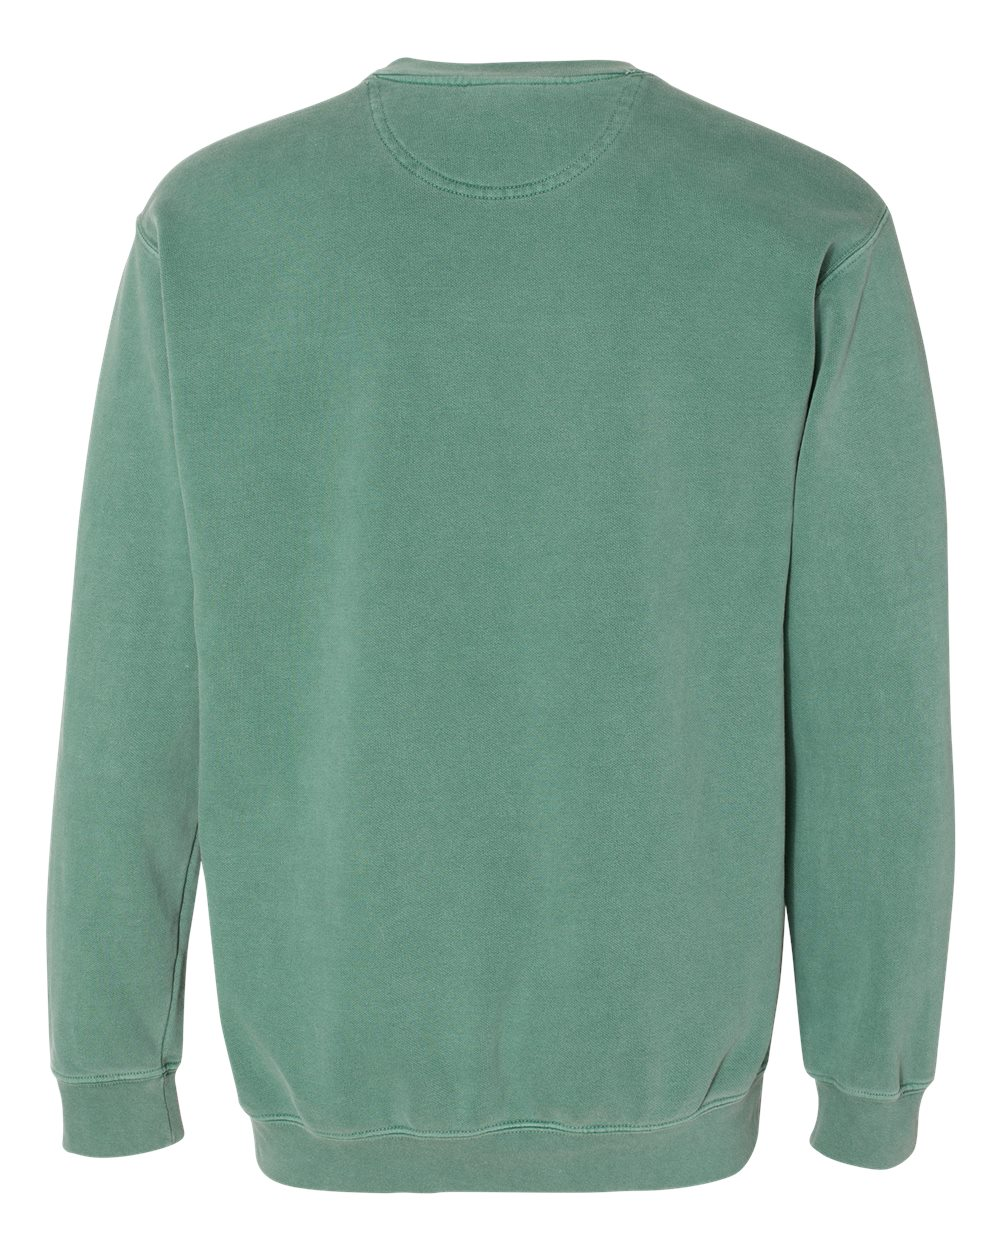 Comfort-Colors-Mens-Garment-Dyed-Ringspun-Crewneck-Sweatshirt-1566-up-to-3XL miniature 43